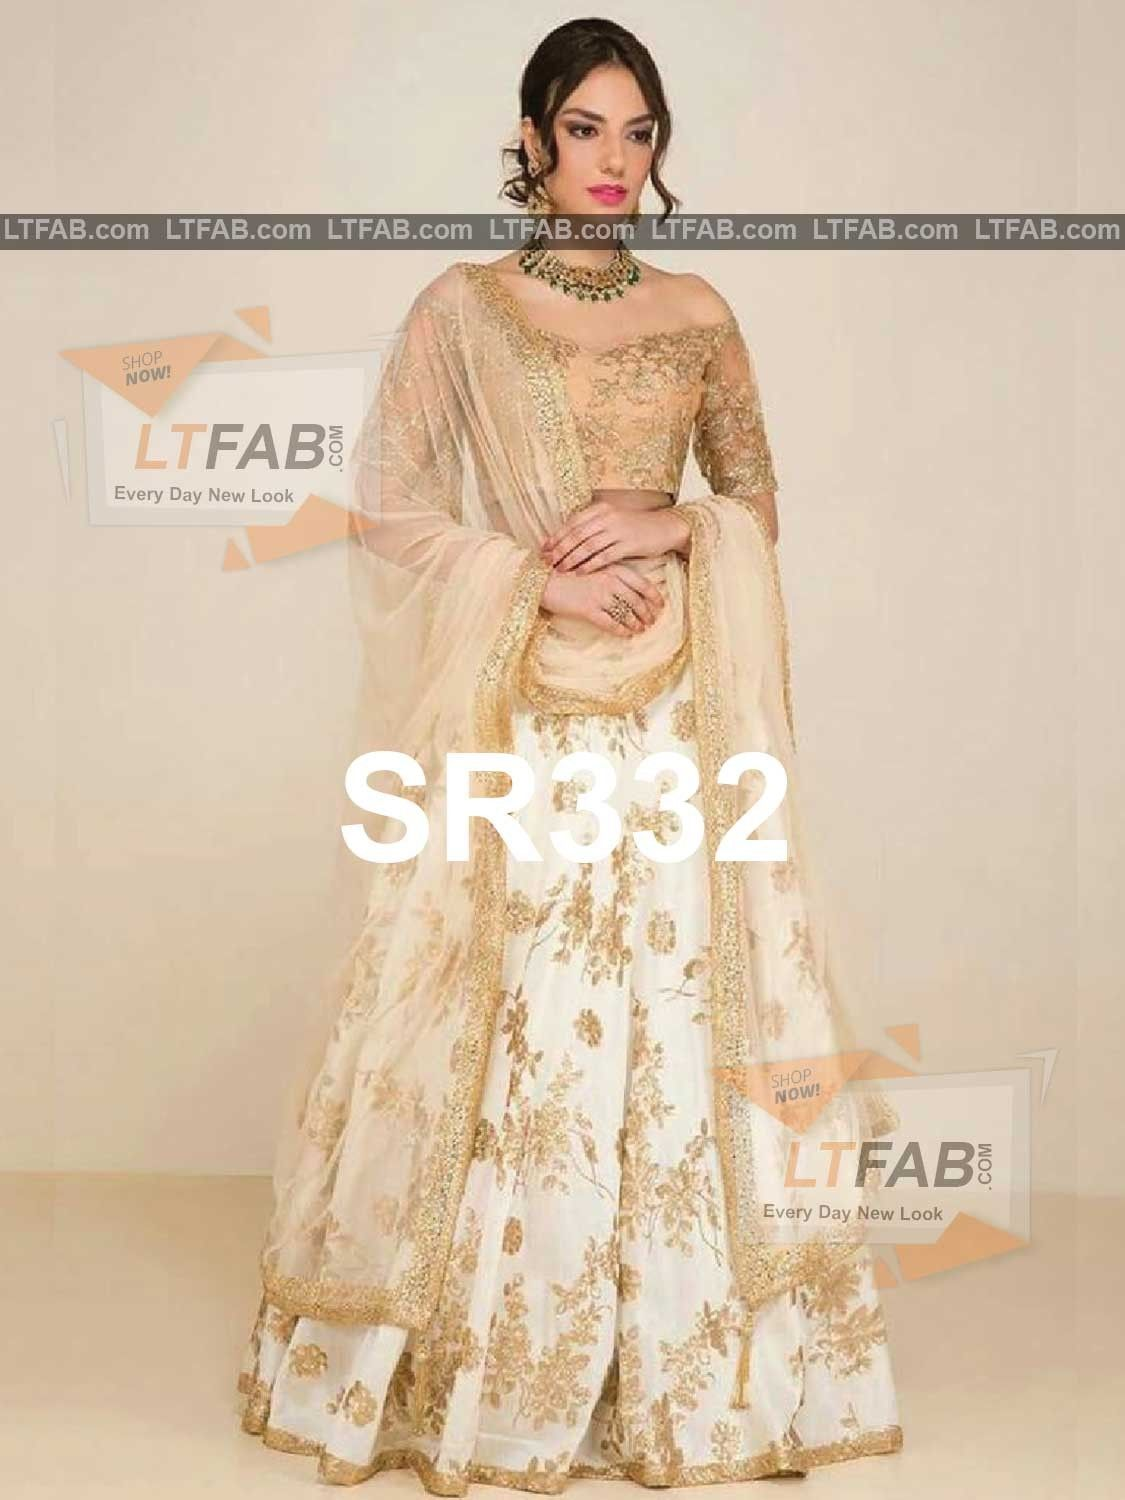 4cb4367d1a08f Purchase the New Banglori White Colour Indian Latest Designer Bridal  Lehenga Choli-SR332 with Matching Color unstiched blouse. It contained the  Embroidered ...